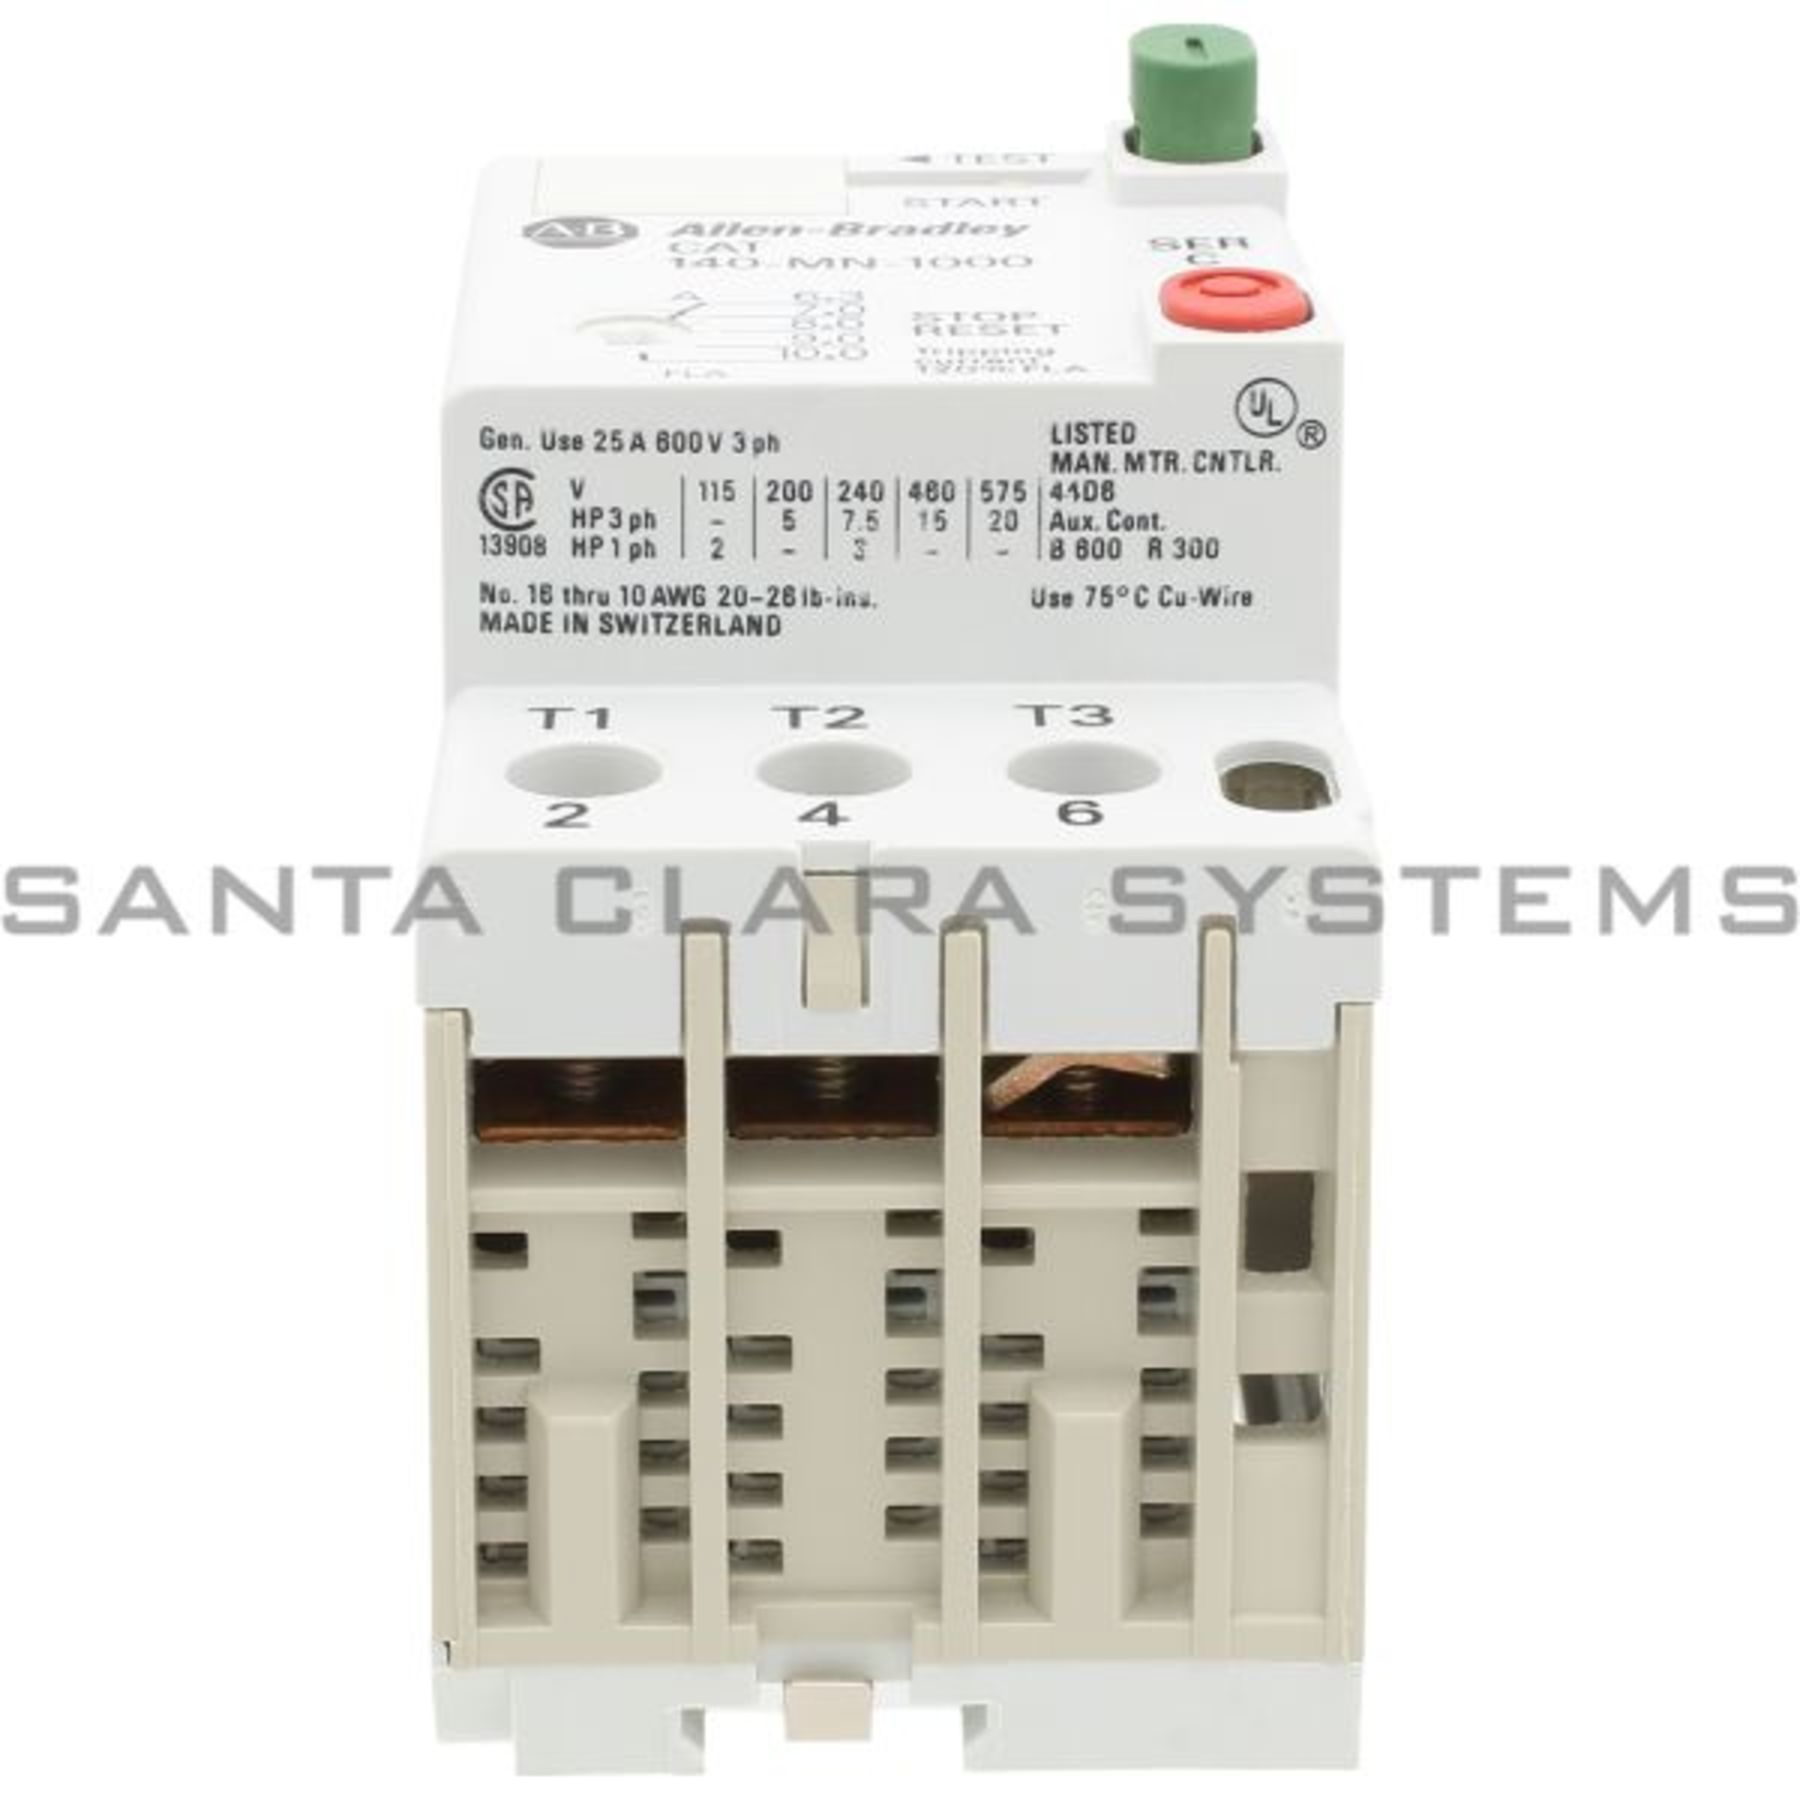 140-MN-1000 Allen dley In stock and ready to ship - Santa ... on